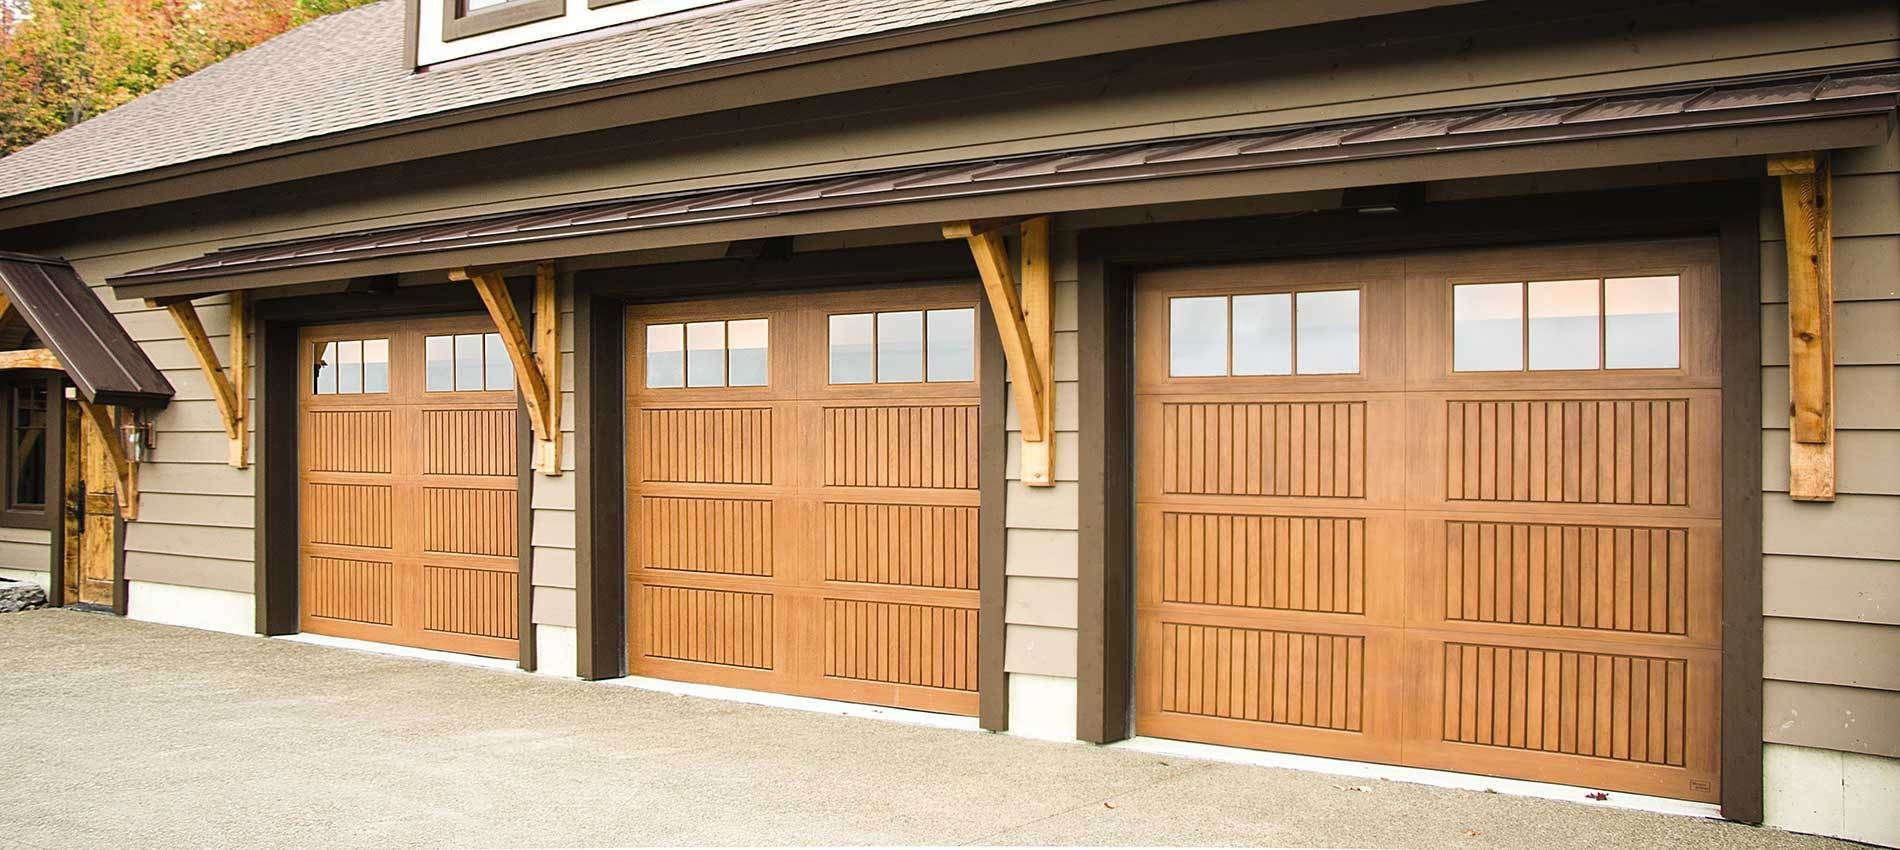 With A1 You Can Be Sure That Hassle Free Setup And Repair Is A Quick Phone Call Away As We Take Garage Doors Fiberglass Garage Doors Residential Garage Doors